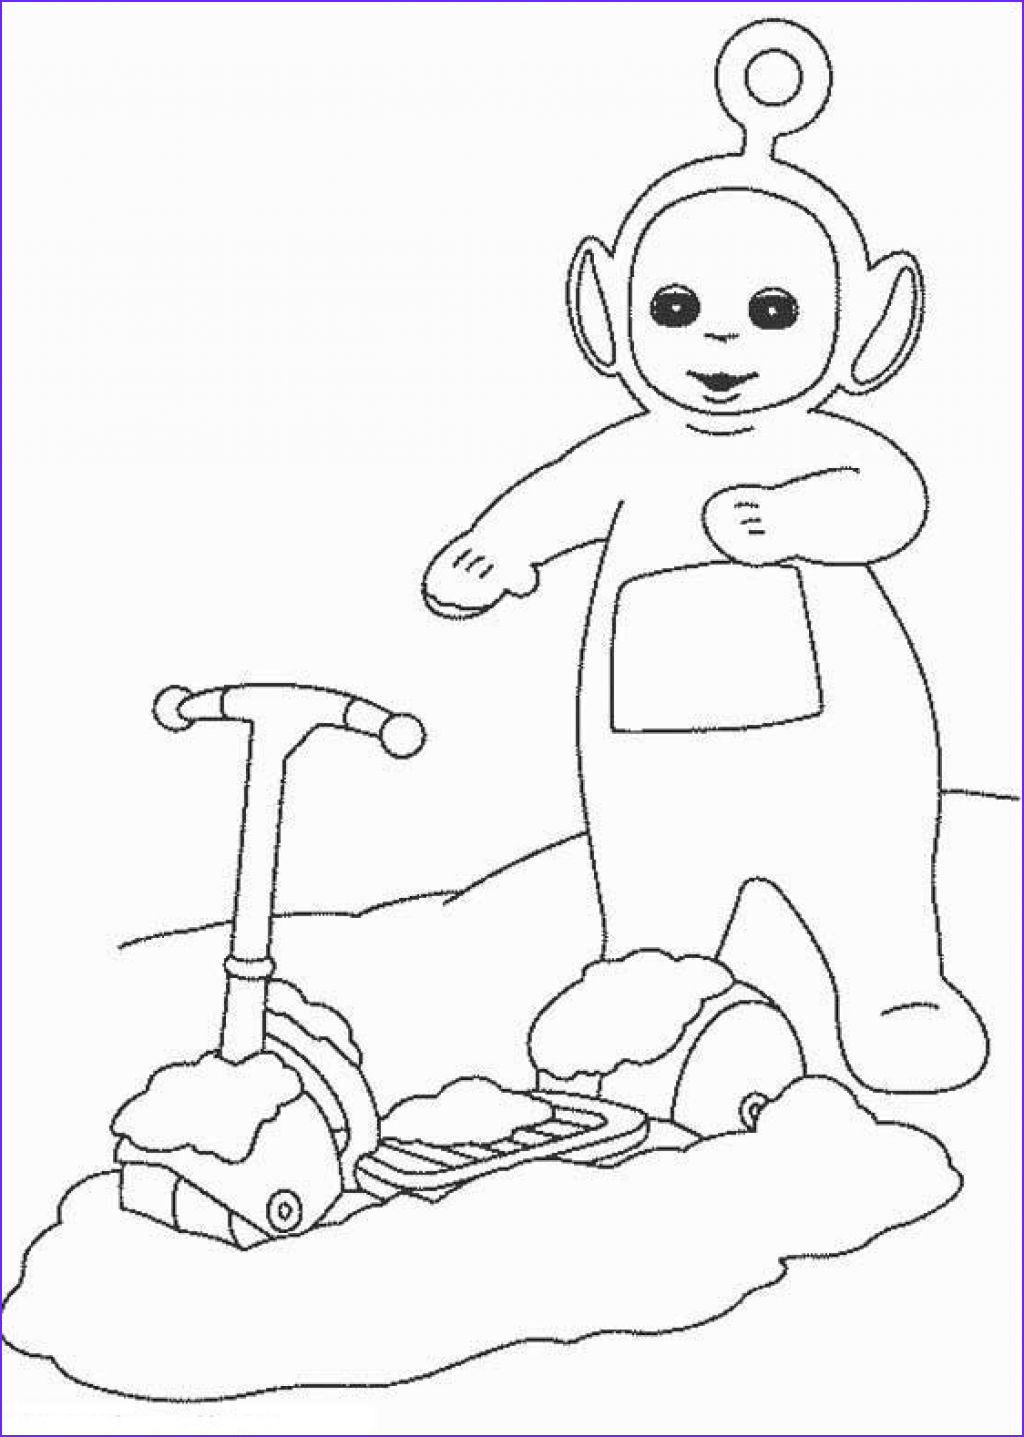 Printable Coloring Page New Collection Free Printable Teletubbies Coloring Pages for Kids